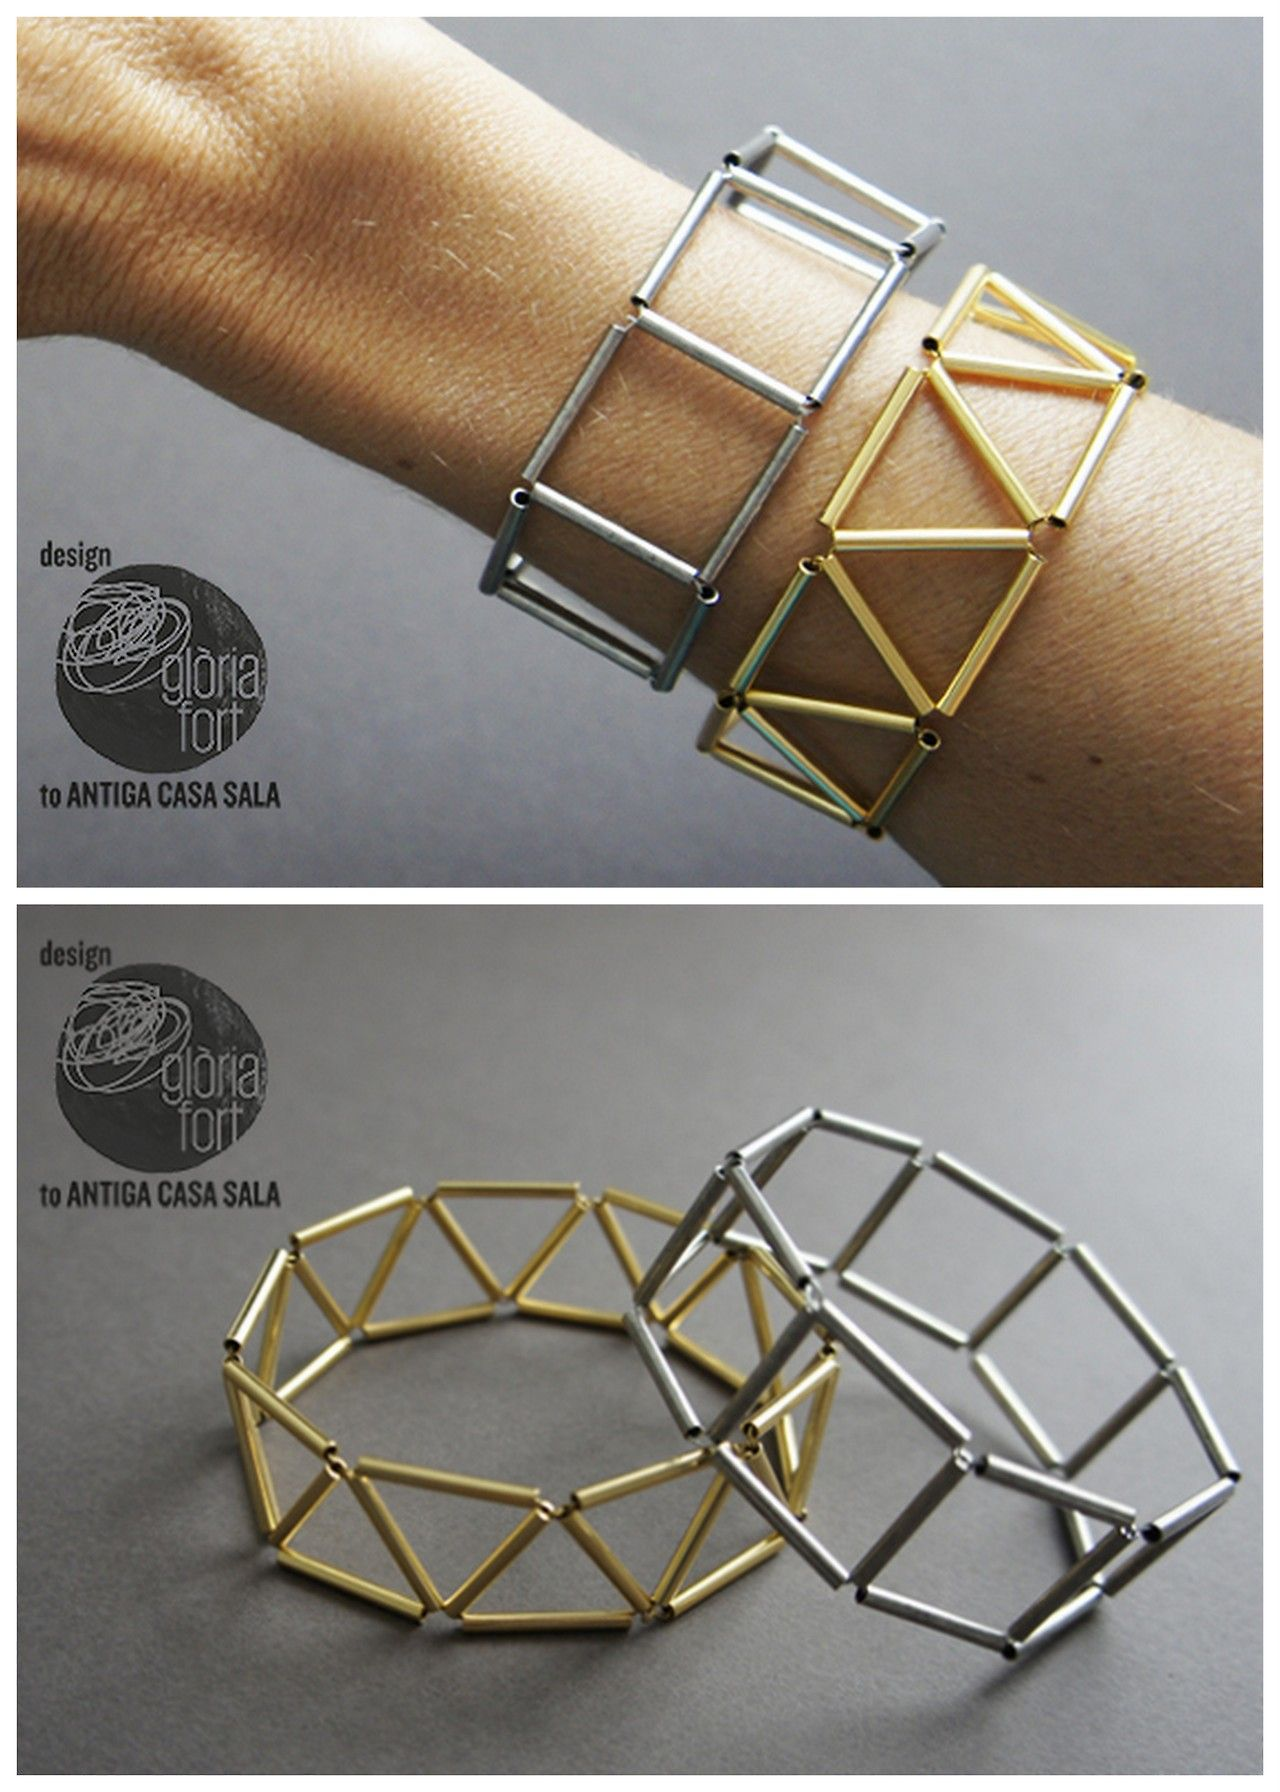 DIY Geometric Bead Bracelet Tutorial from Gloria Fort. This is a cheap DIY because you are making this geometric bead bracelet out of wire and tube beads.I used Chrome to translate. I've been seeing...